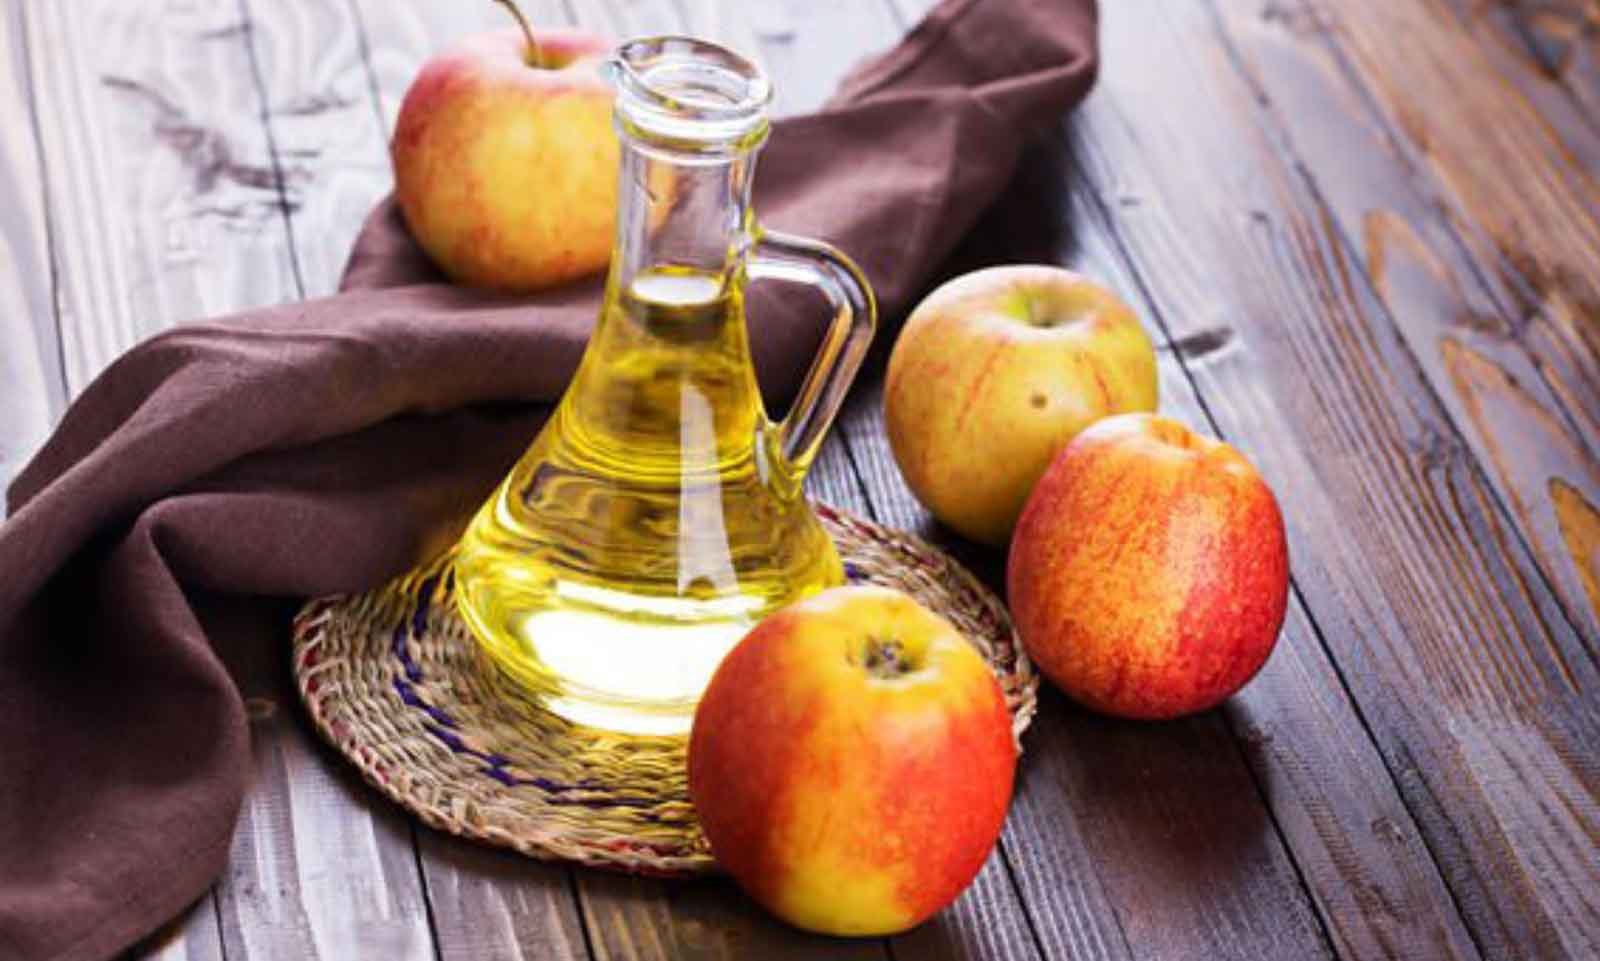 Apple Cider Vinegar: Benefits, Uses & Dosage